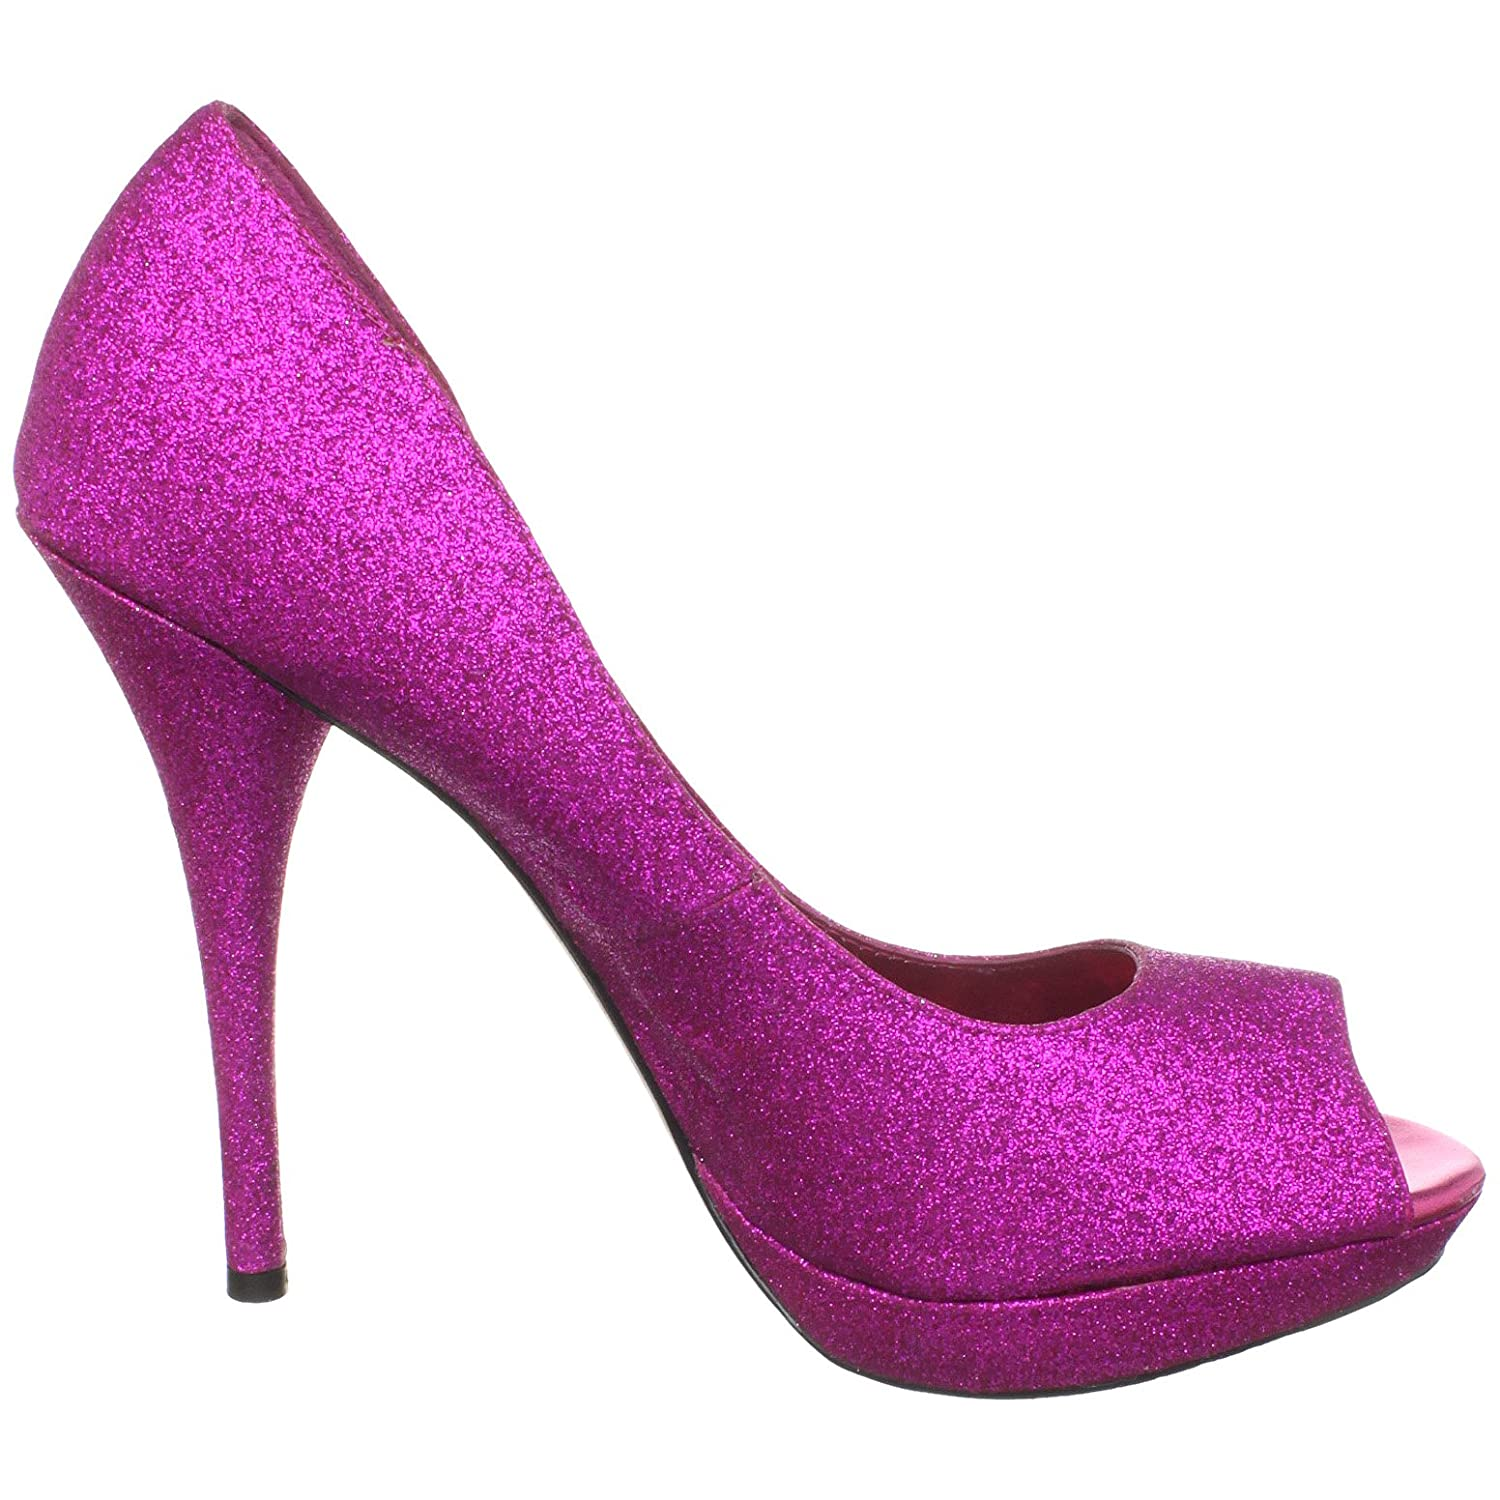 24f8977269c I ve had a hankering for glitter for several months now. It seems glitter  shoes are becoming in style. My latest craving is for pink glitter pumps.